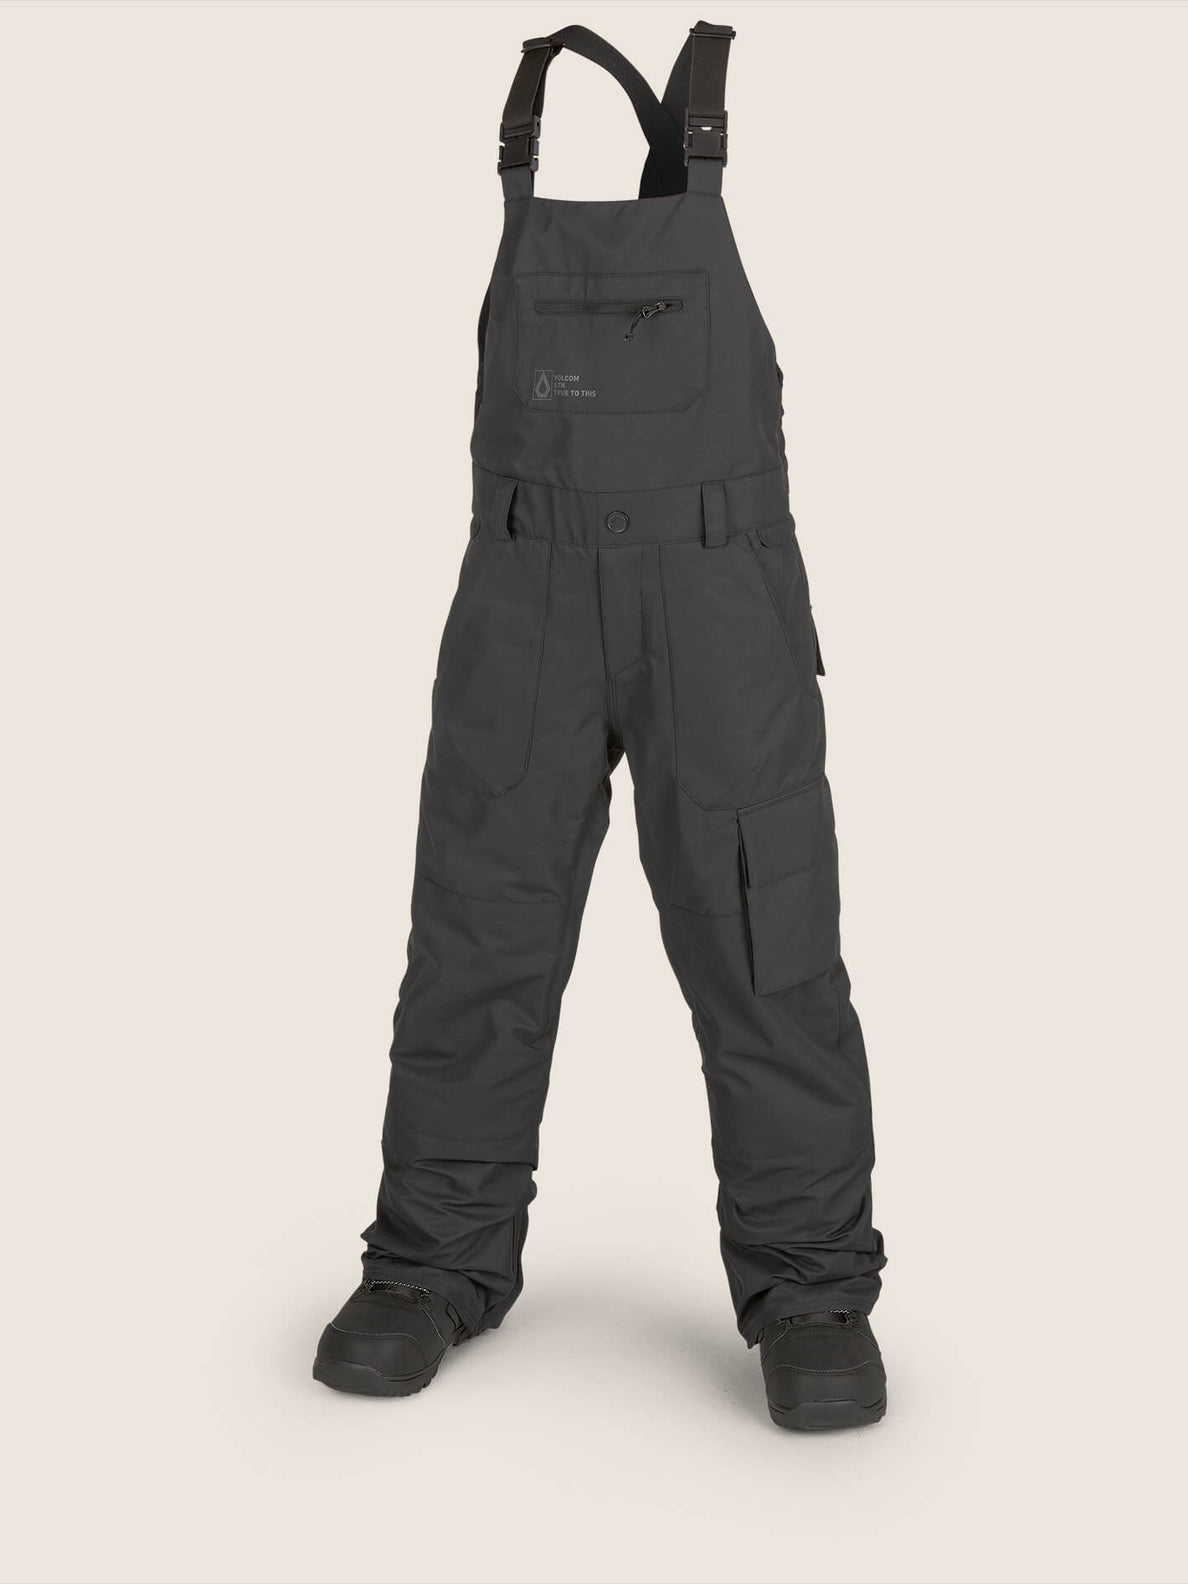 Barkley Bib Overall In Black, Front View